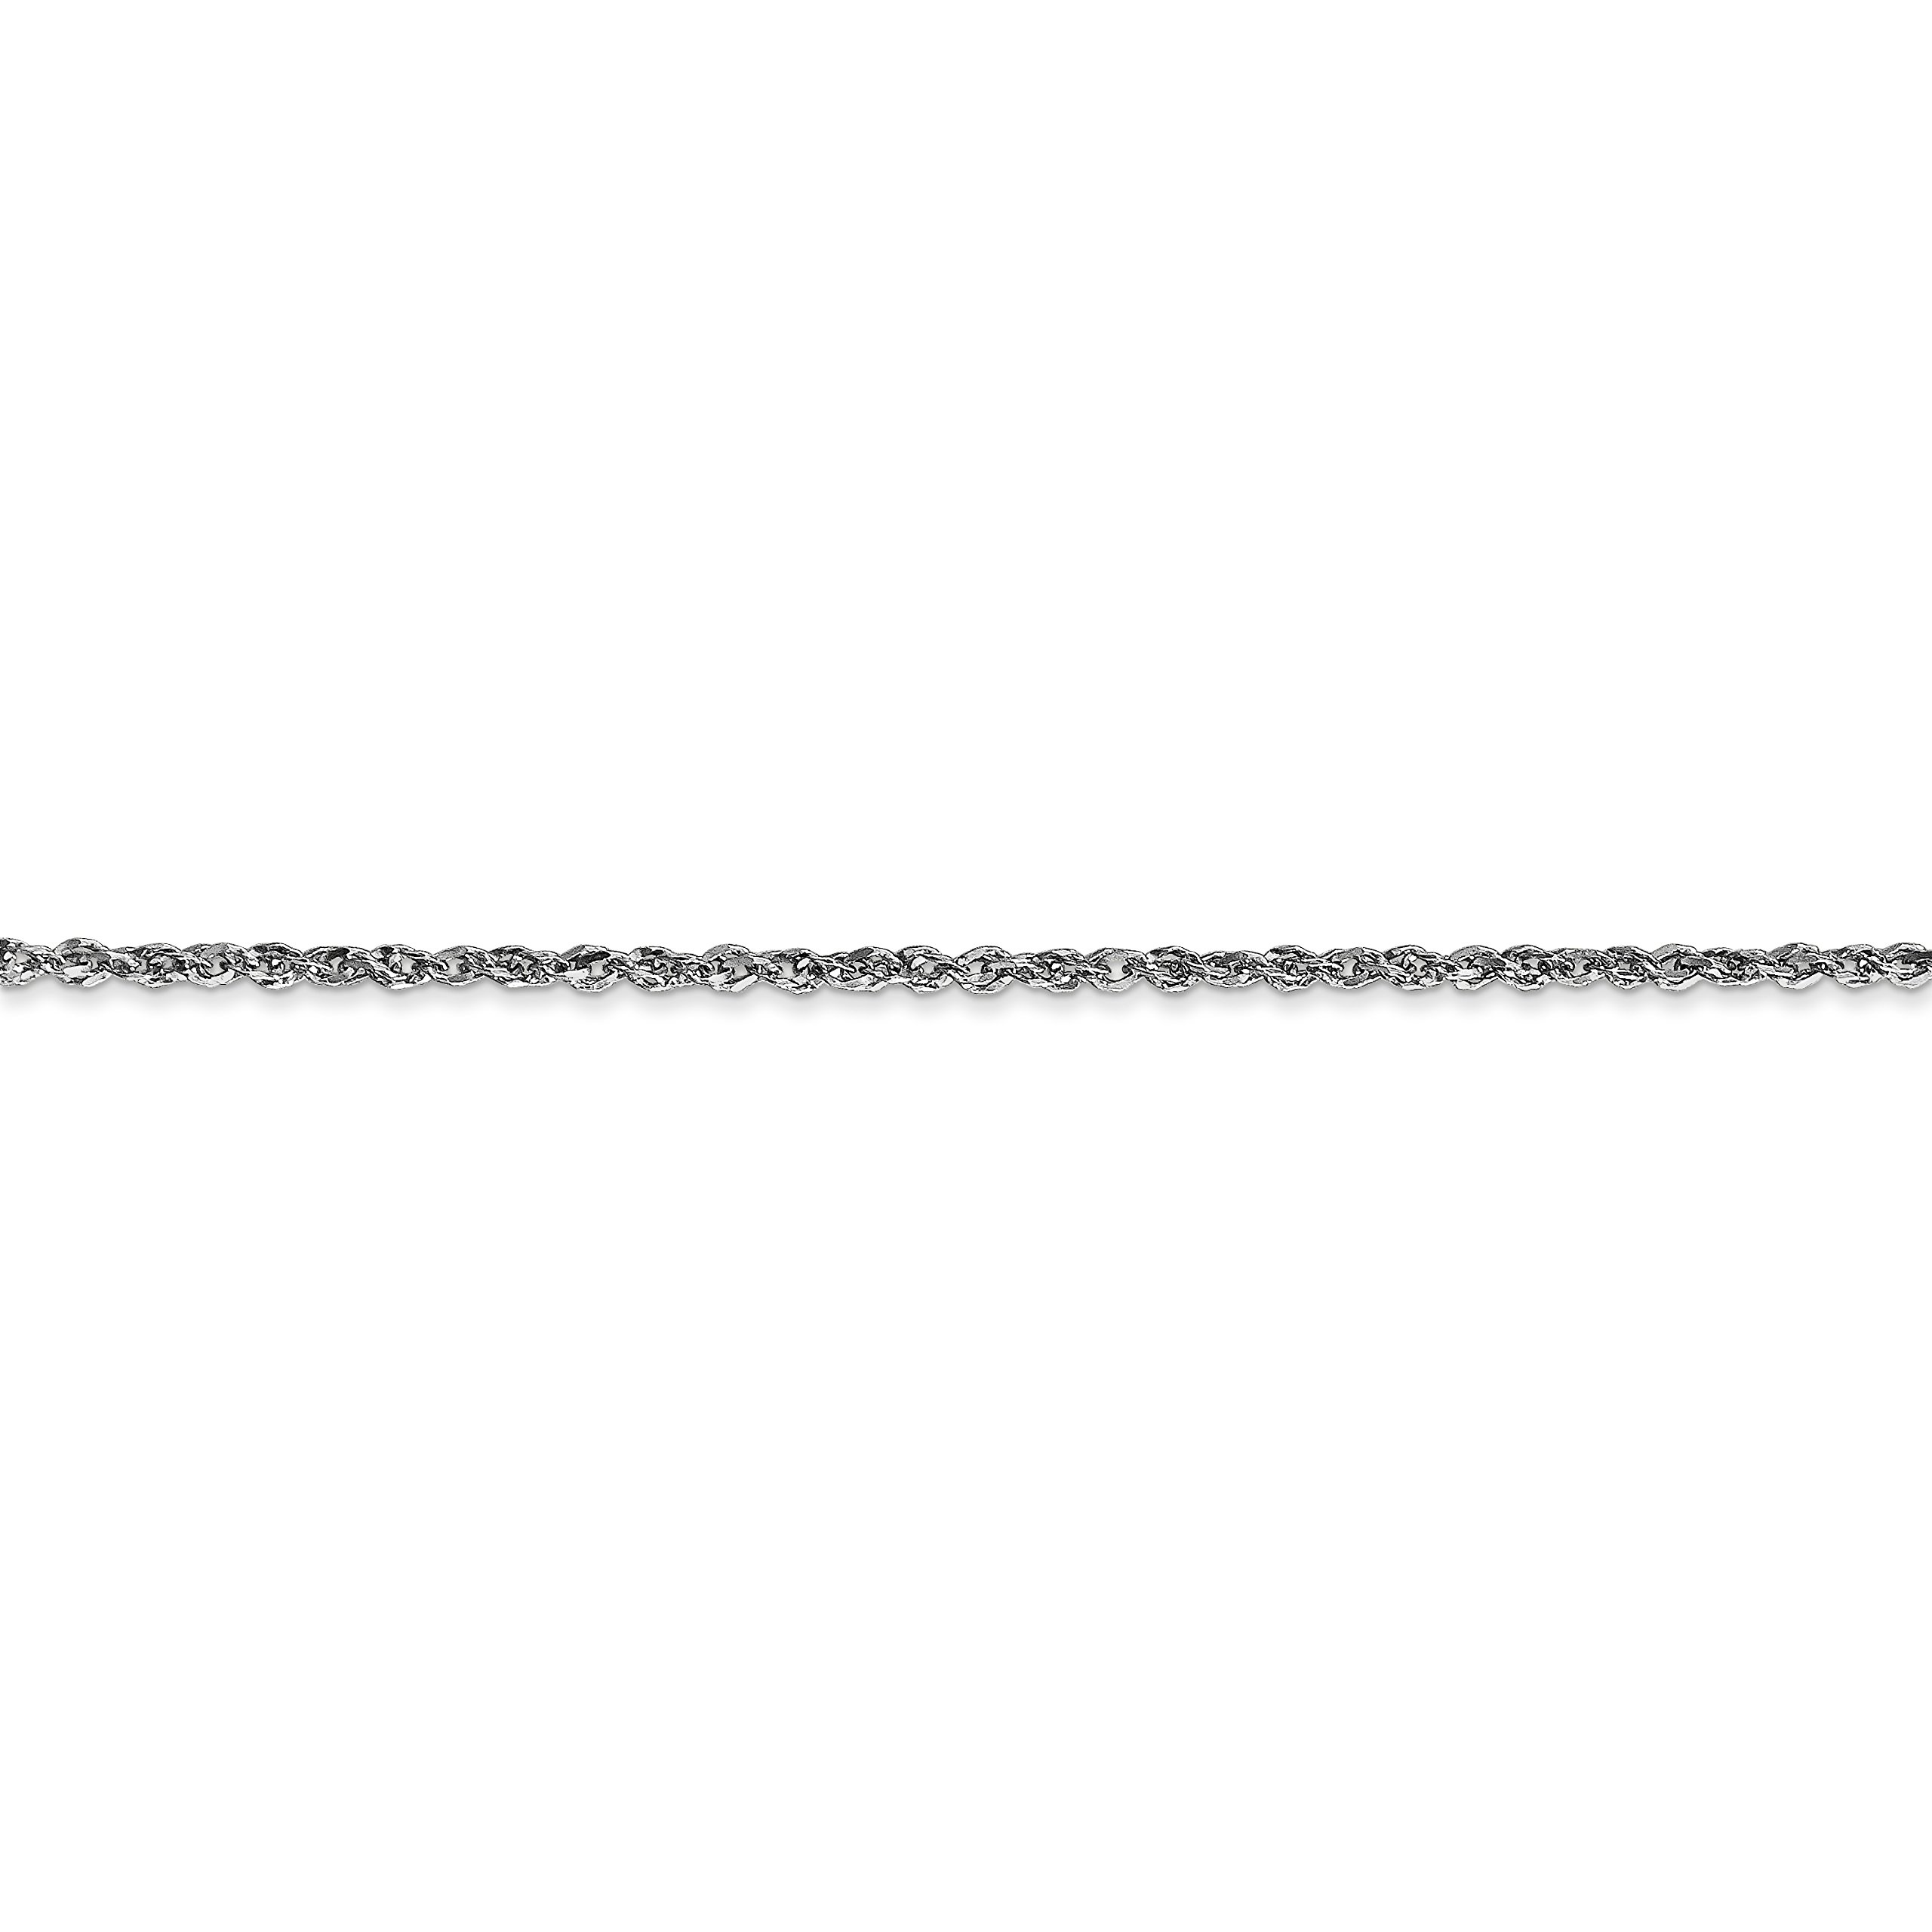 ICE CARATS 10k White Gold 1.7mm Ropa Chain Anklet Ankle Beach Bracelet 10 Inch Fine Jewelry Gift Set For Women Heart